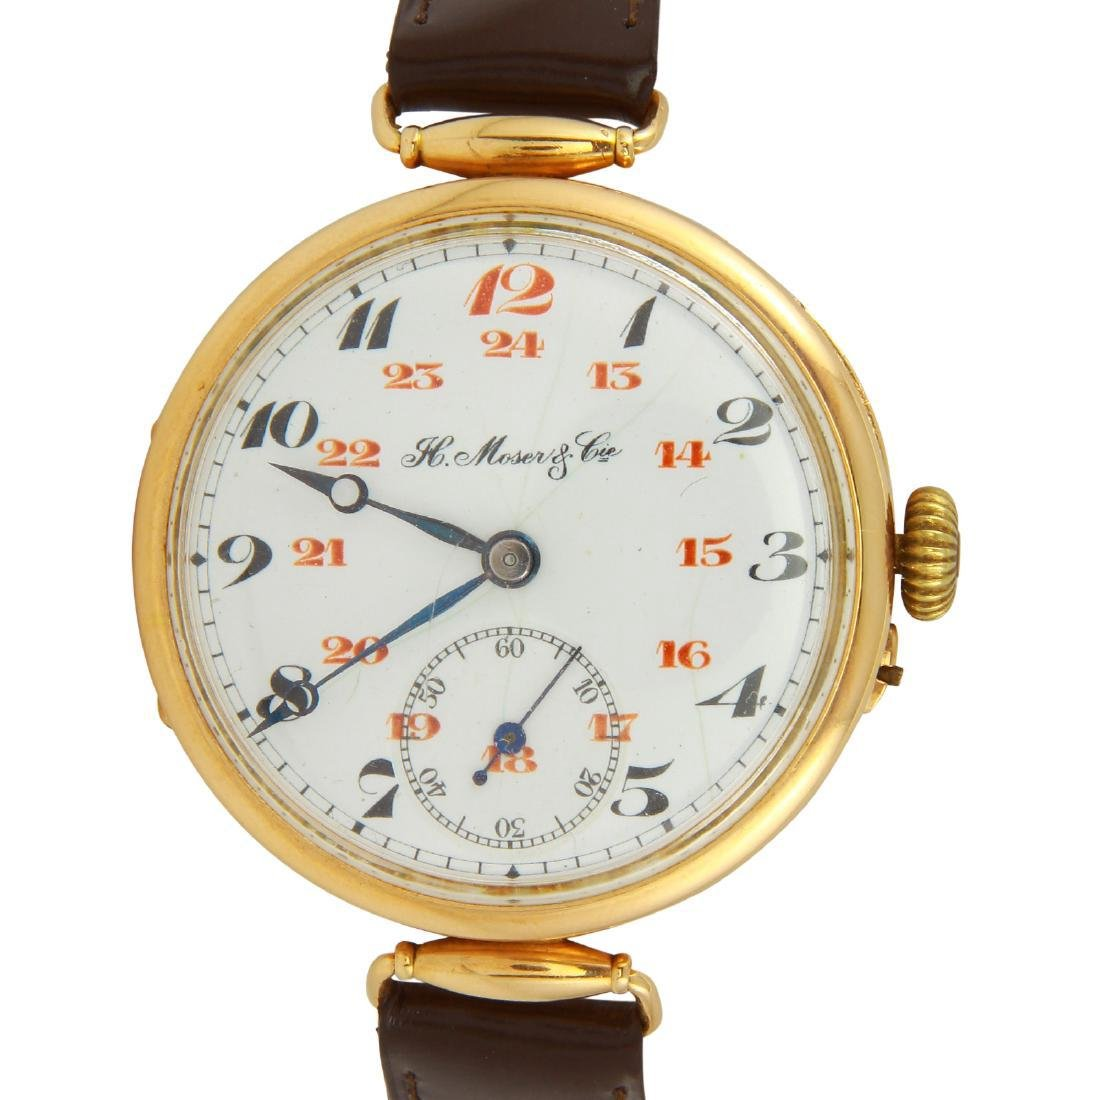 Antique Rare H. Moser & Cie 14k Gold Early Wristwatch